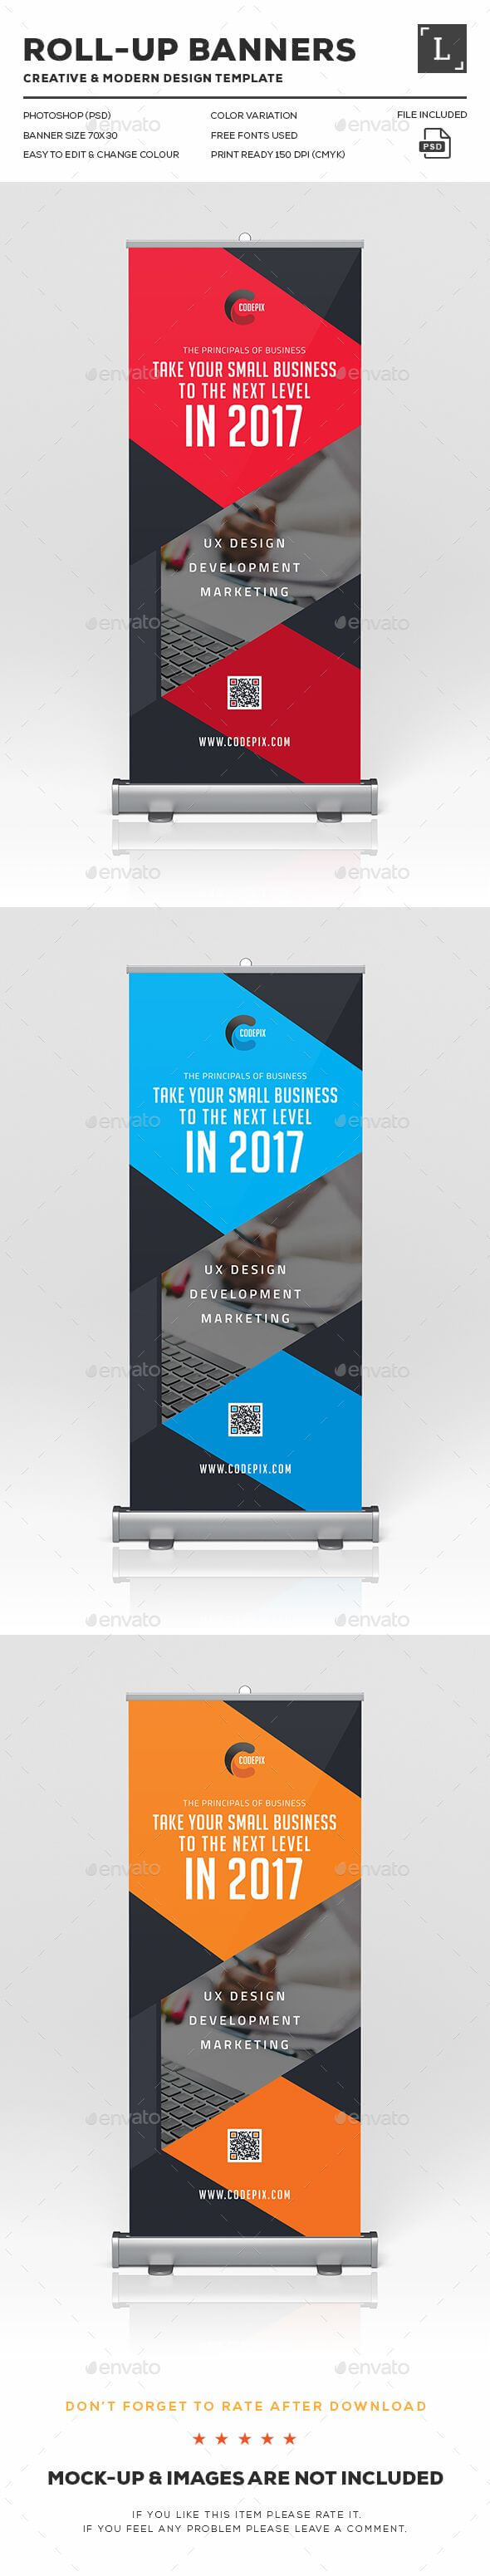 Corporate Roll-Up Banner Design Template - Signage Print regarding Outdoor Banner Design Templates